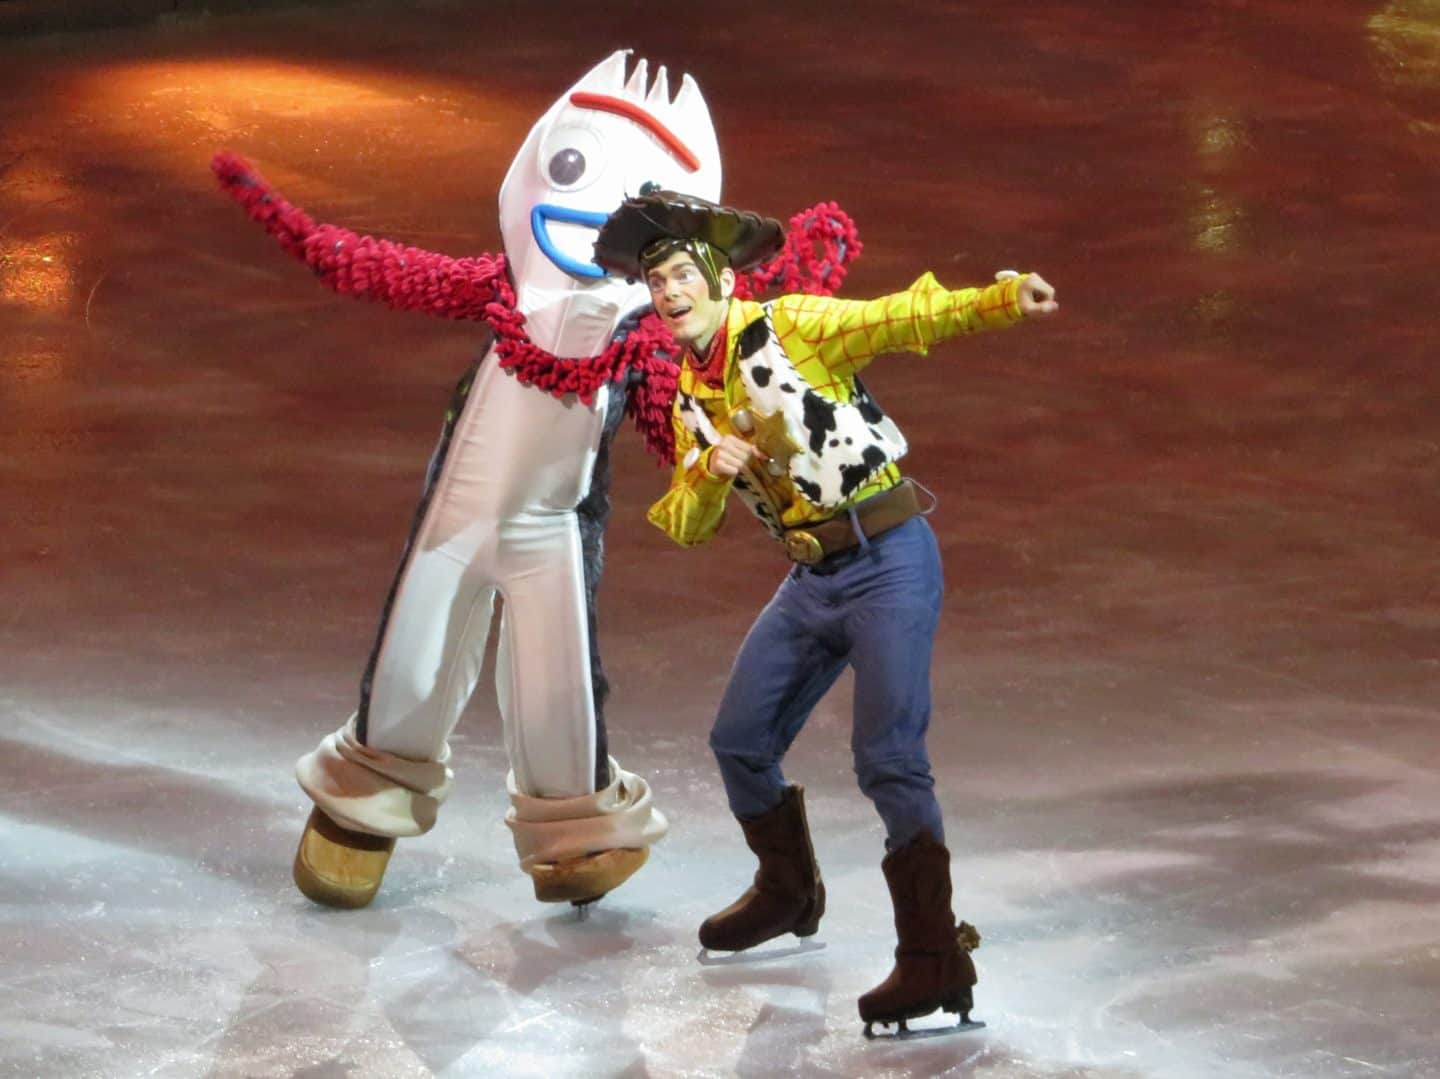 Toy Story characters Forky and Woody in Disney on Ice 100 year celebration